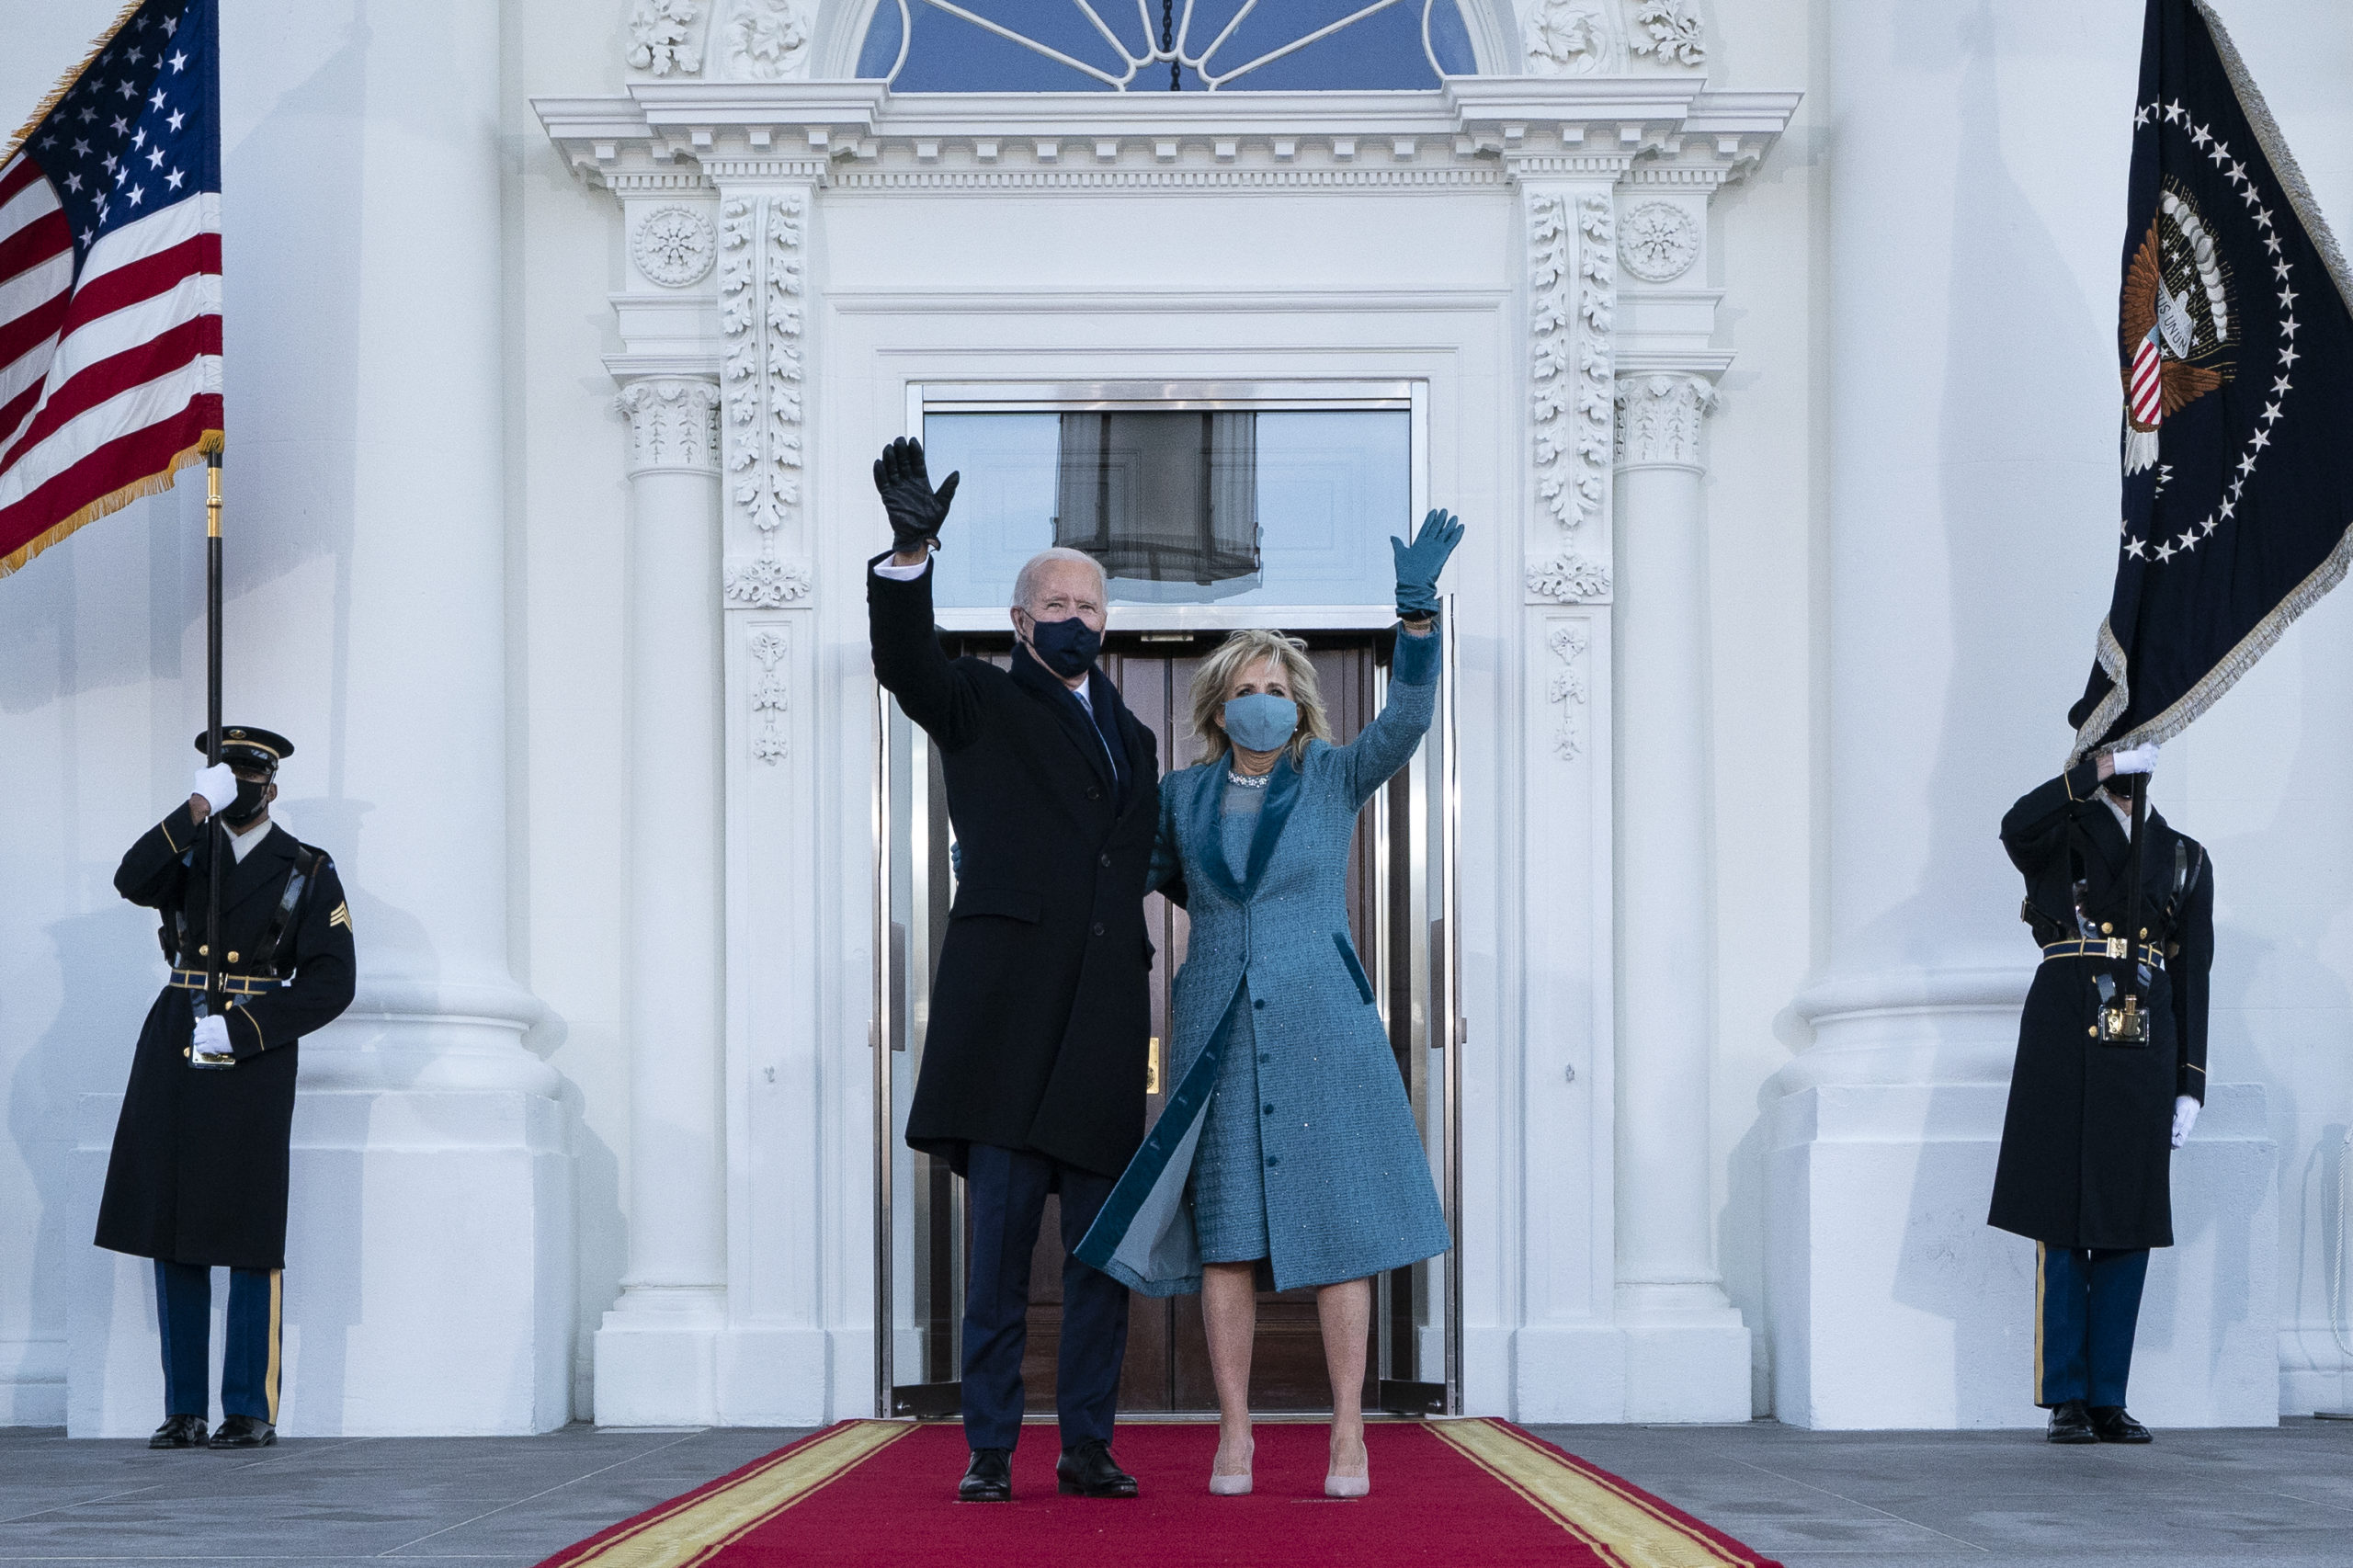 President Joe Biden and first lady Dr. Jill Biden wave as they arrive at the North Portico of the White House, on January 20, 2021, in Washington, DC. (Alex Brandon-Pool/Getty Images)